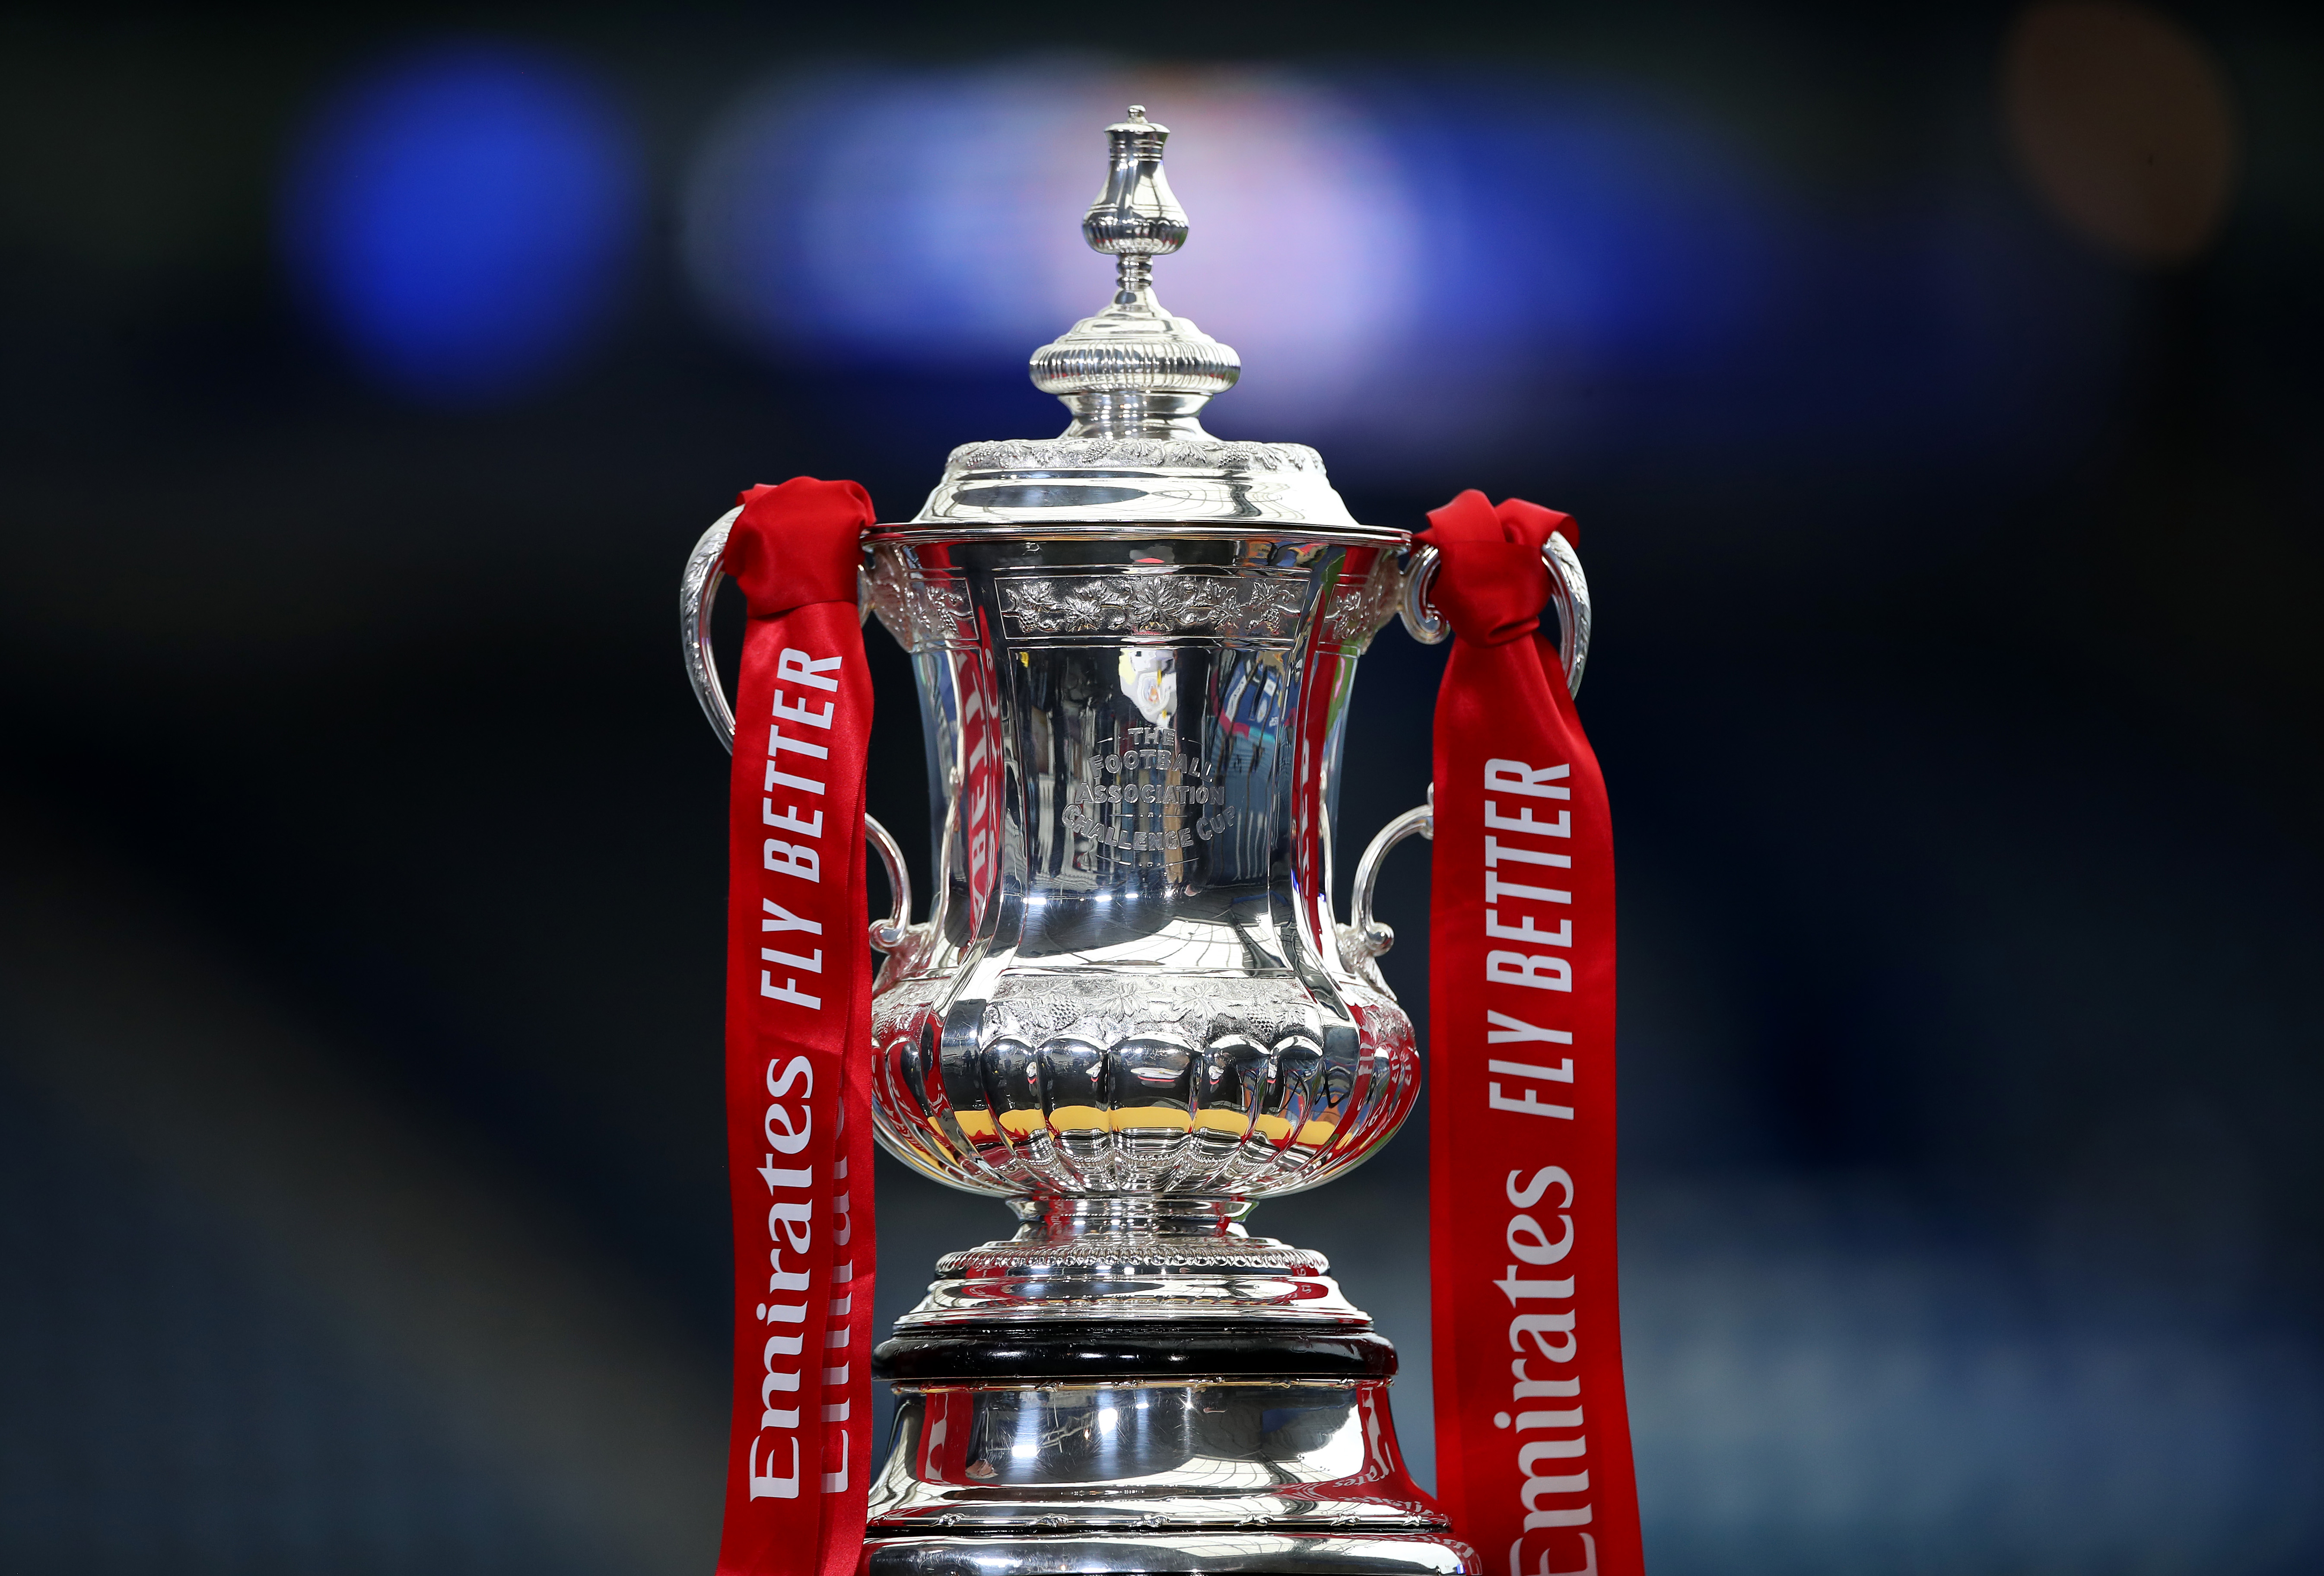 Southampton, Leicester City, Manchester United, Bournemouth, FA Cup Semi-Final